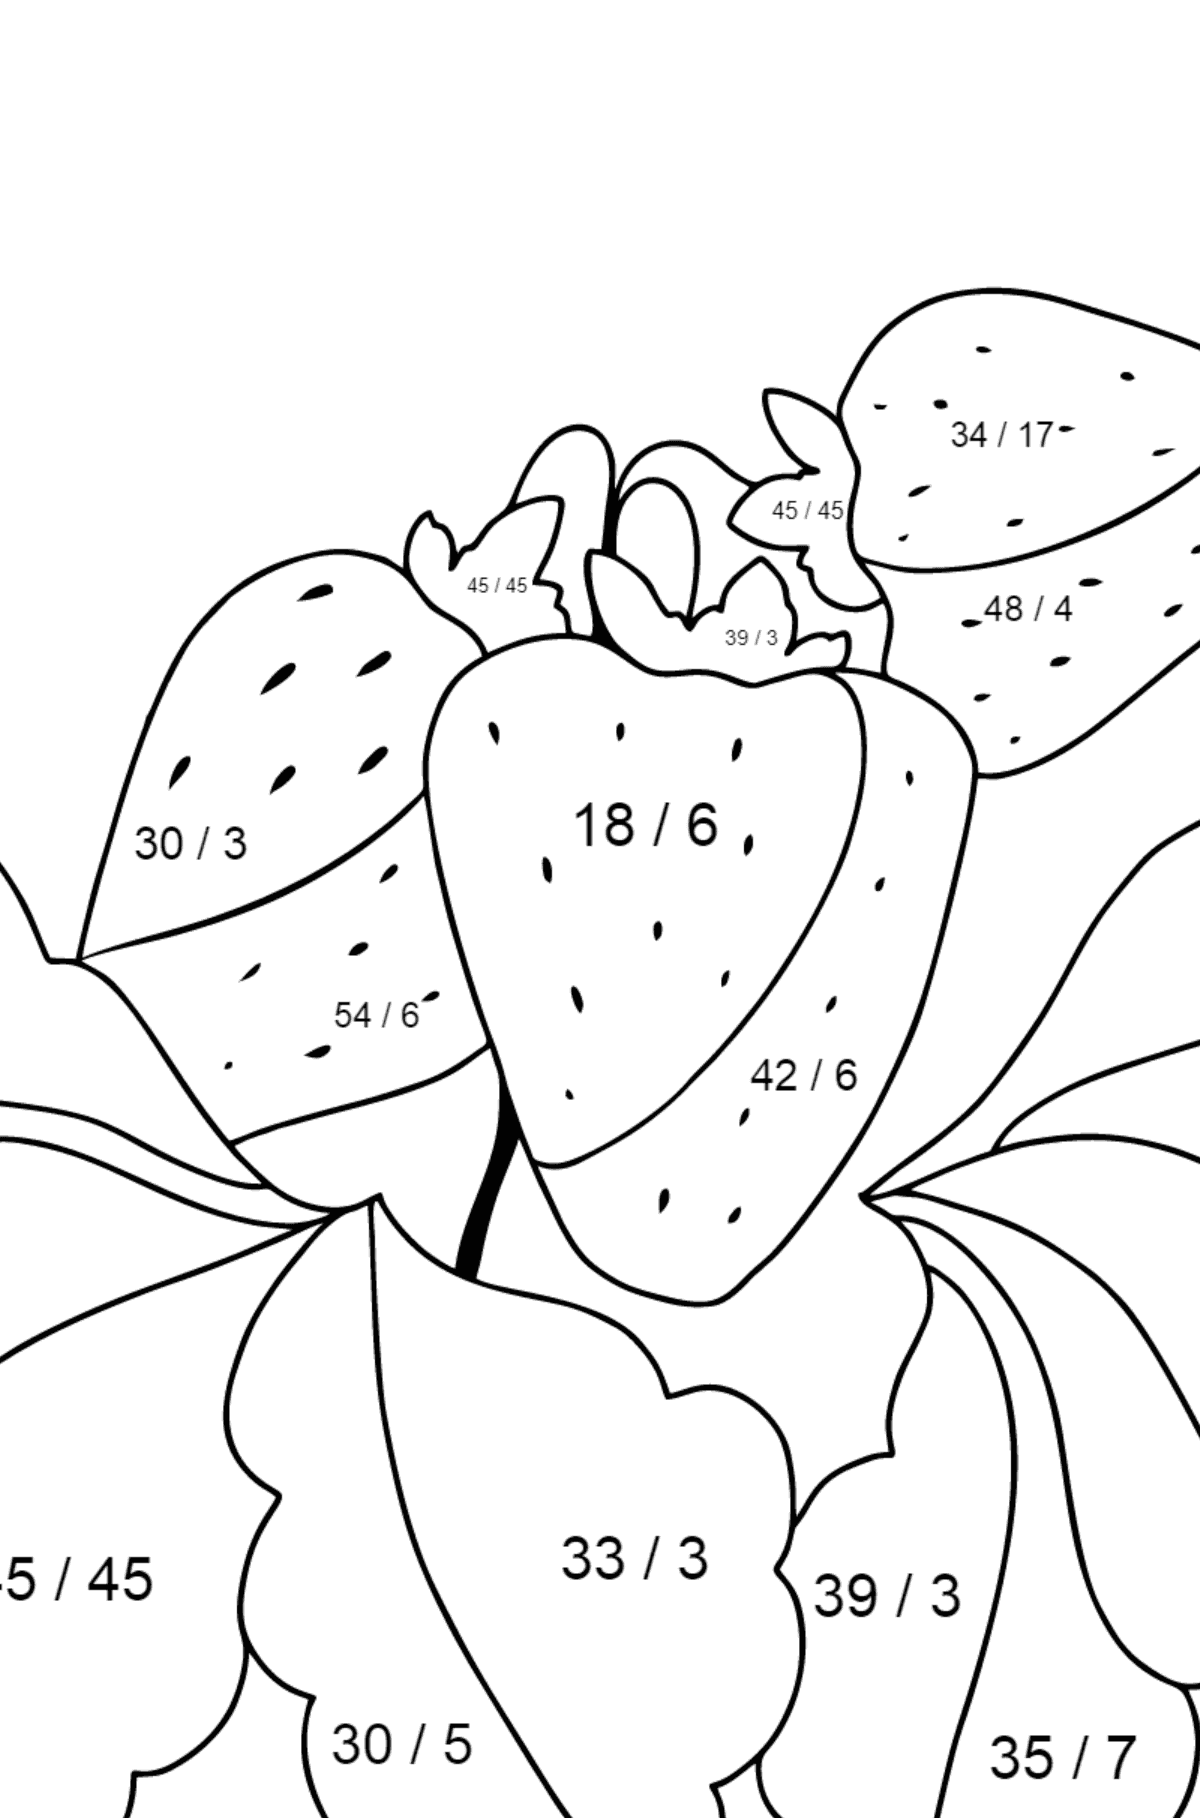 Summer Coloring Page - Strawberries are Ready on the Garden Bed - Math Coloring - Division for Kids